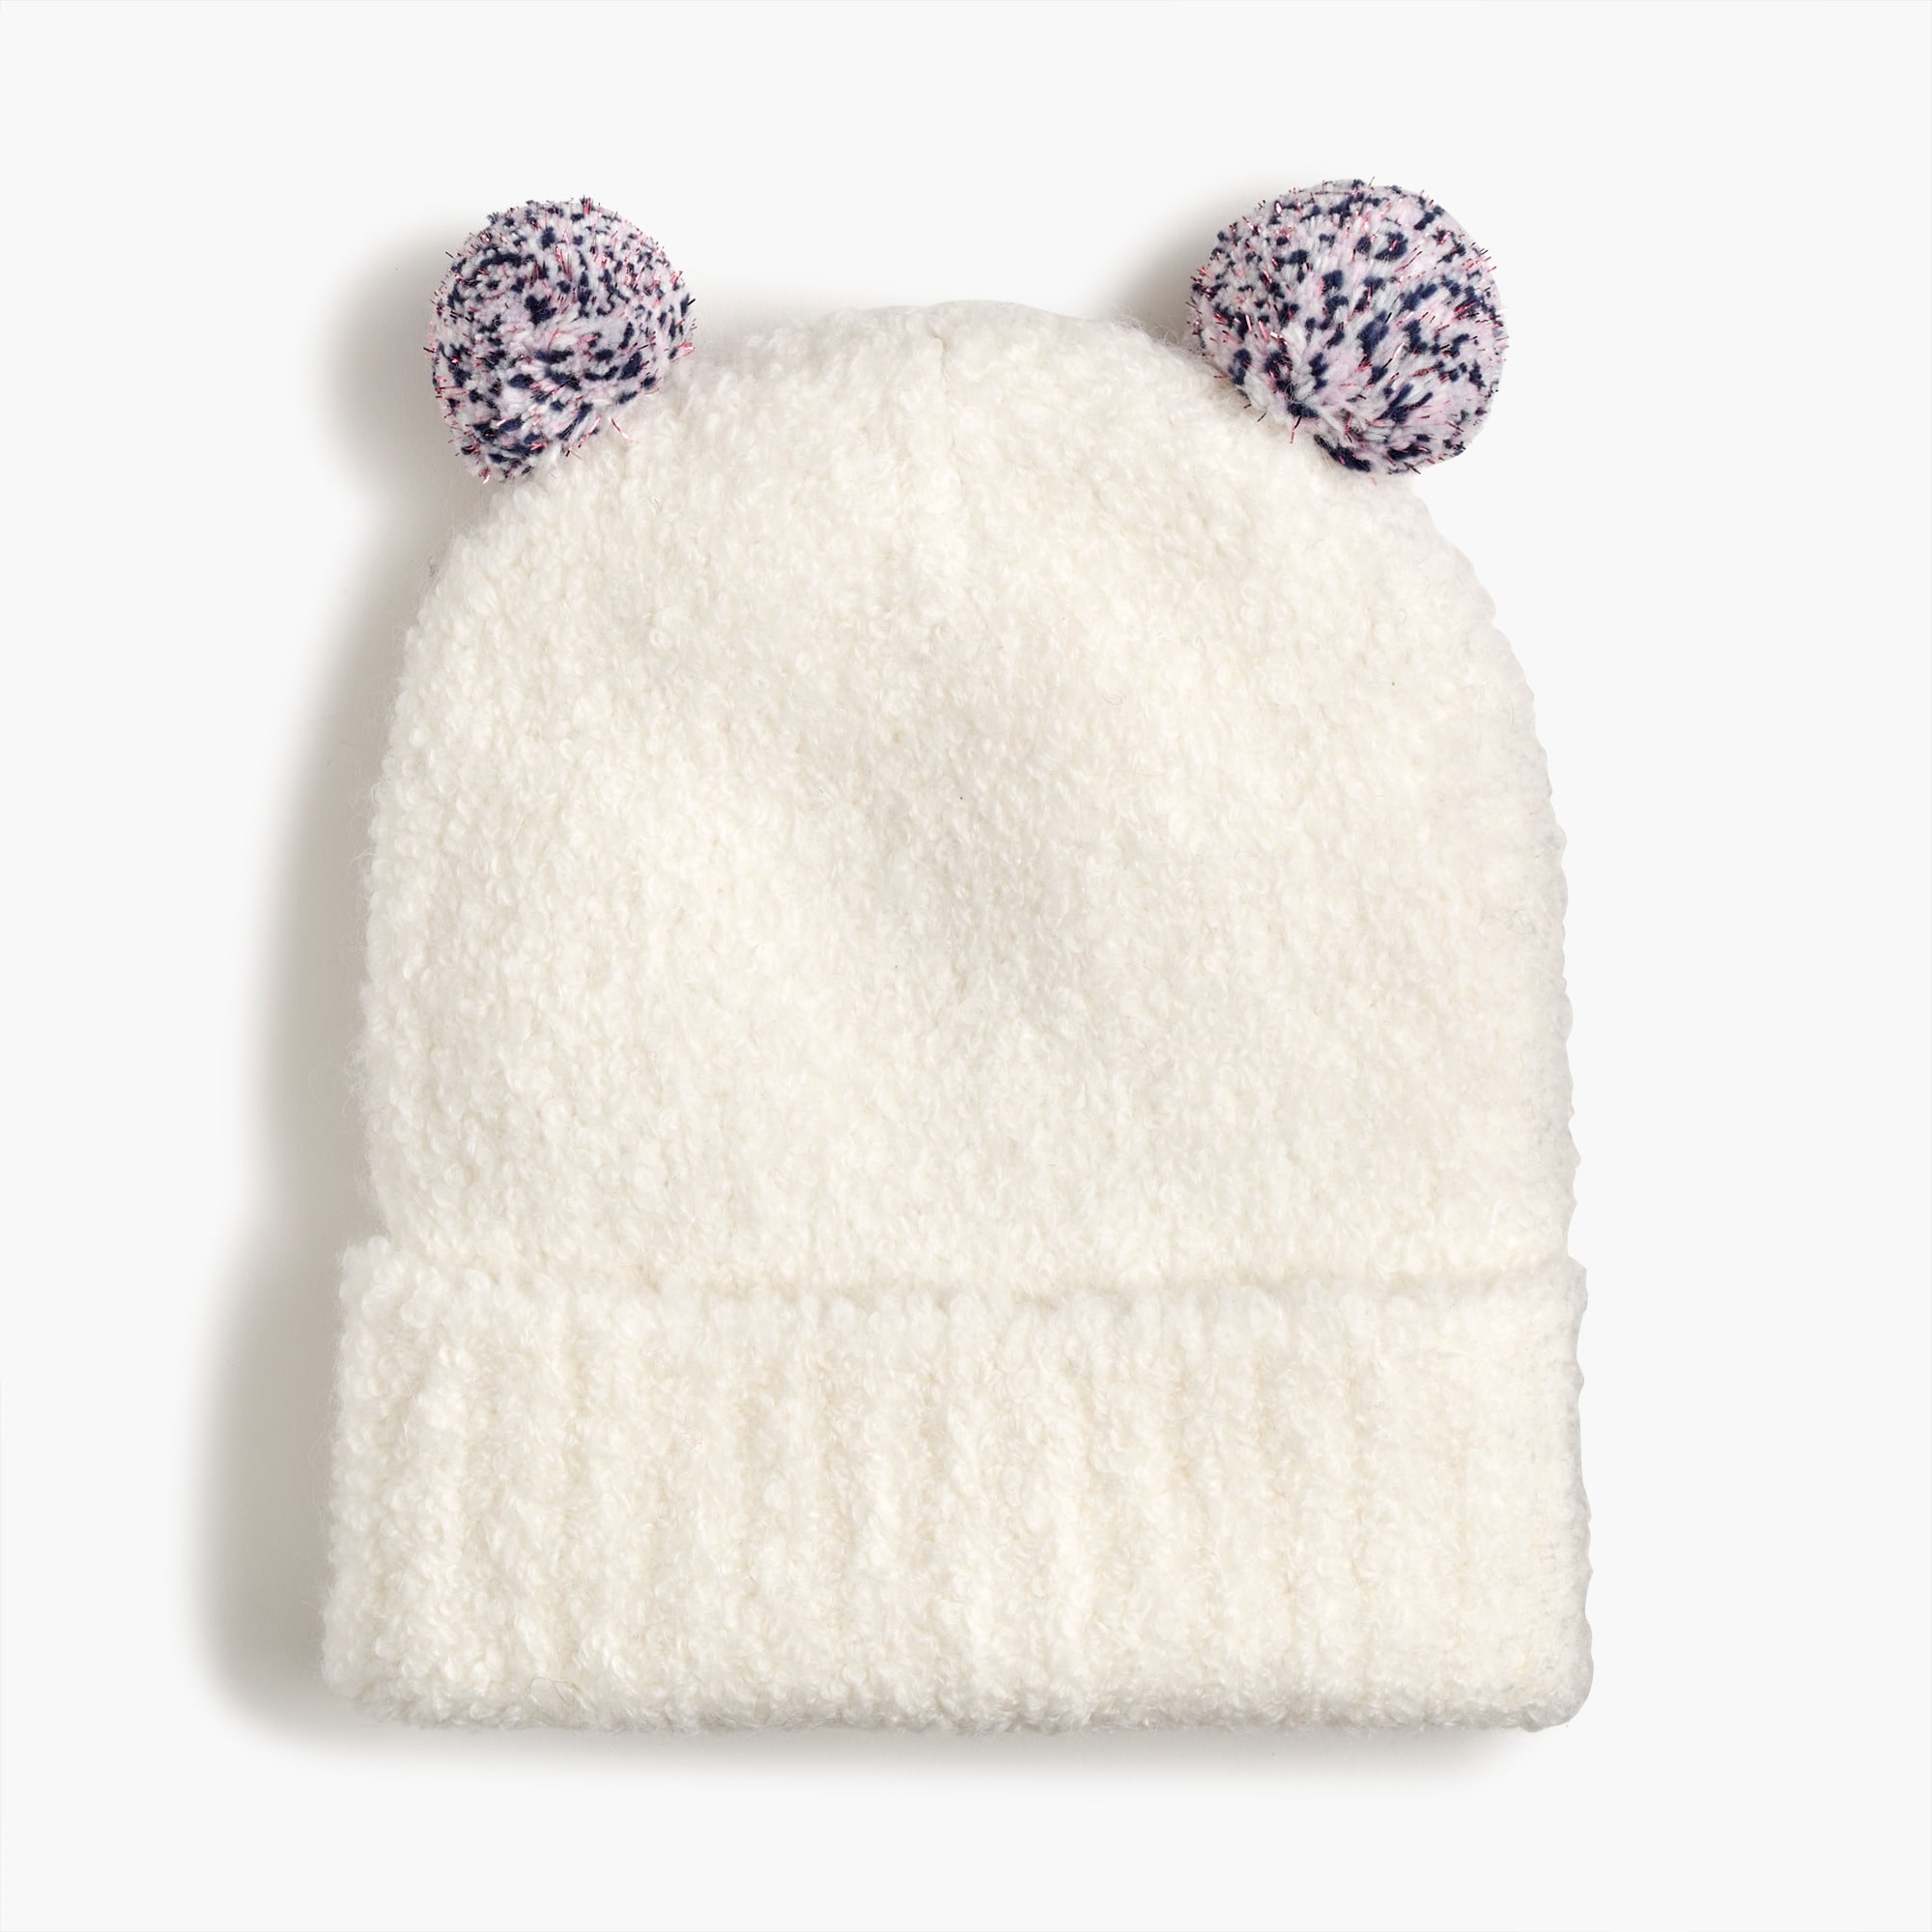 girls' knit cap with sparkly pom-poms - girls' accessories